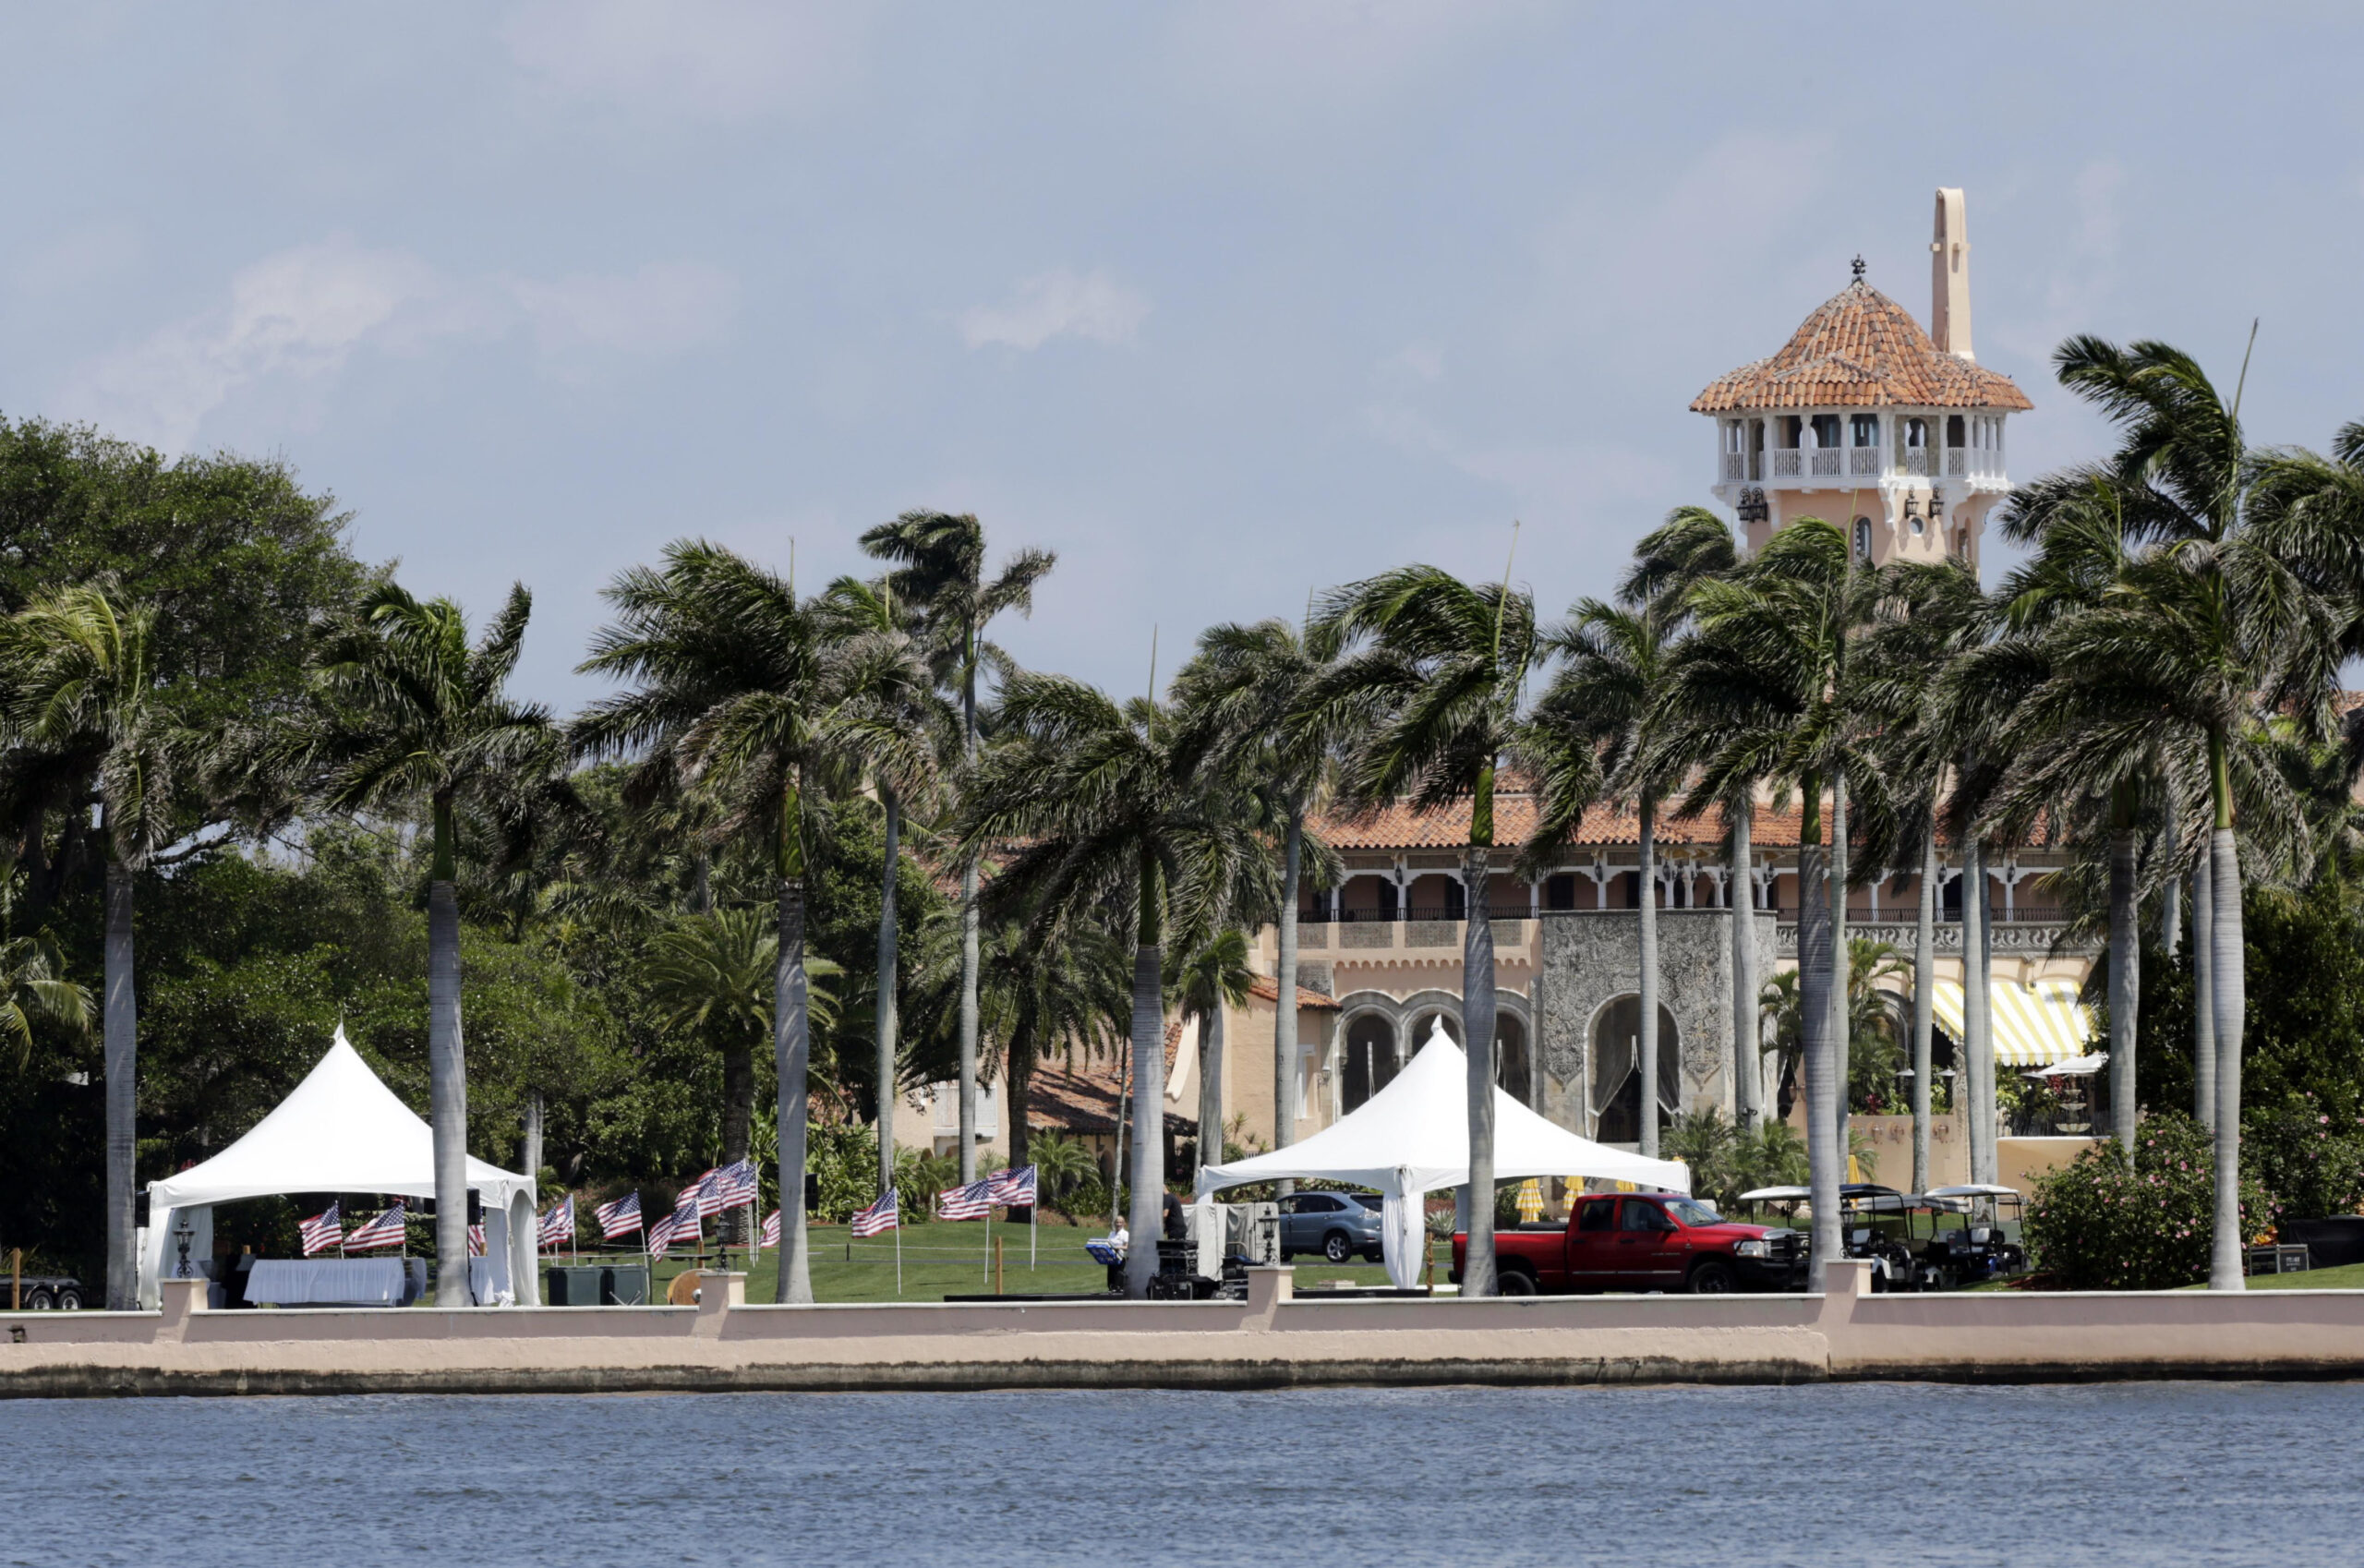 Special Tax For Trump'S Maralago Visits Being Considered